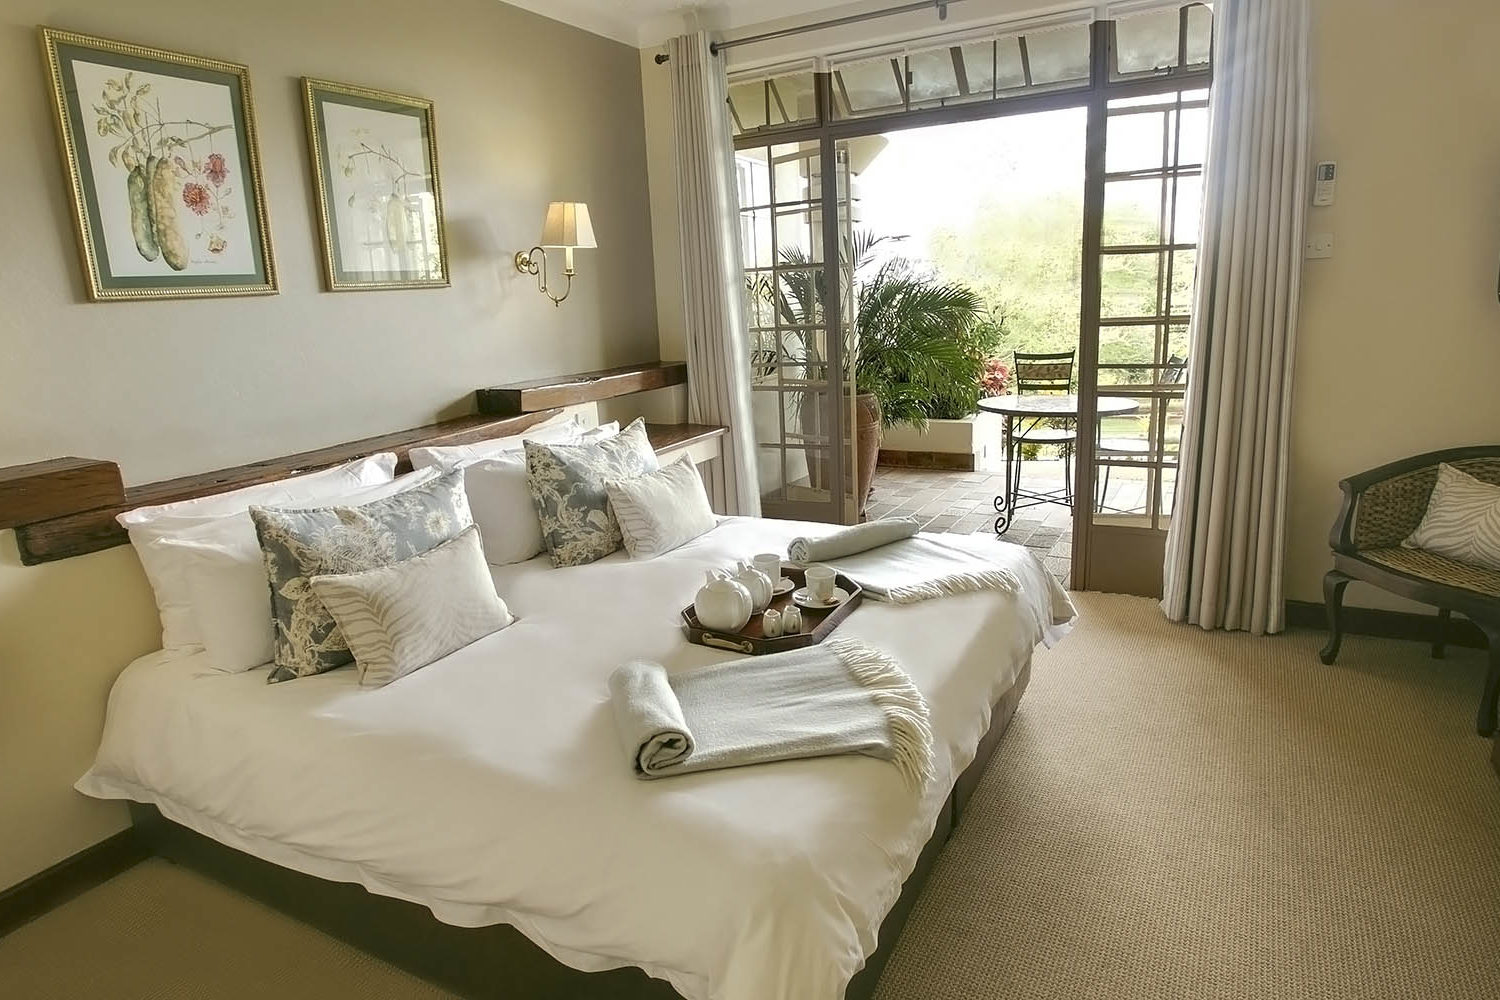 ilala river lodge victoria-falls-zambia-in-style-zimbabwe-lodges-accommodation-luxurious-accommodation-standard-double-room-hotel